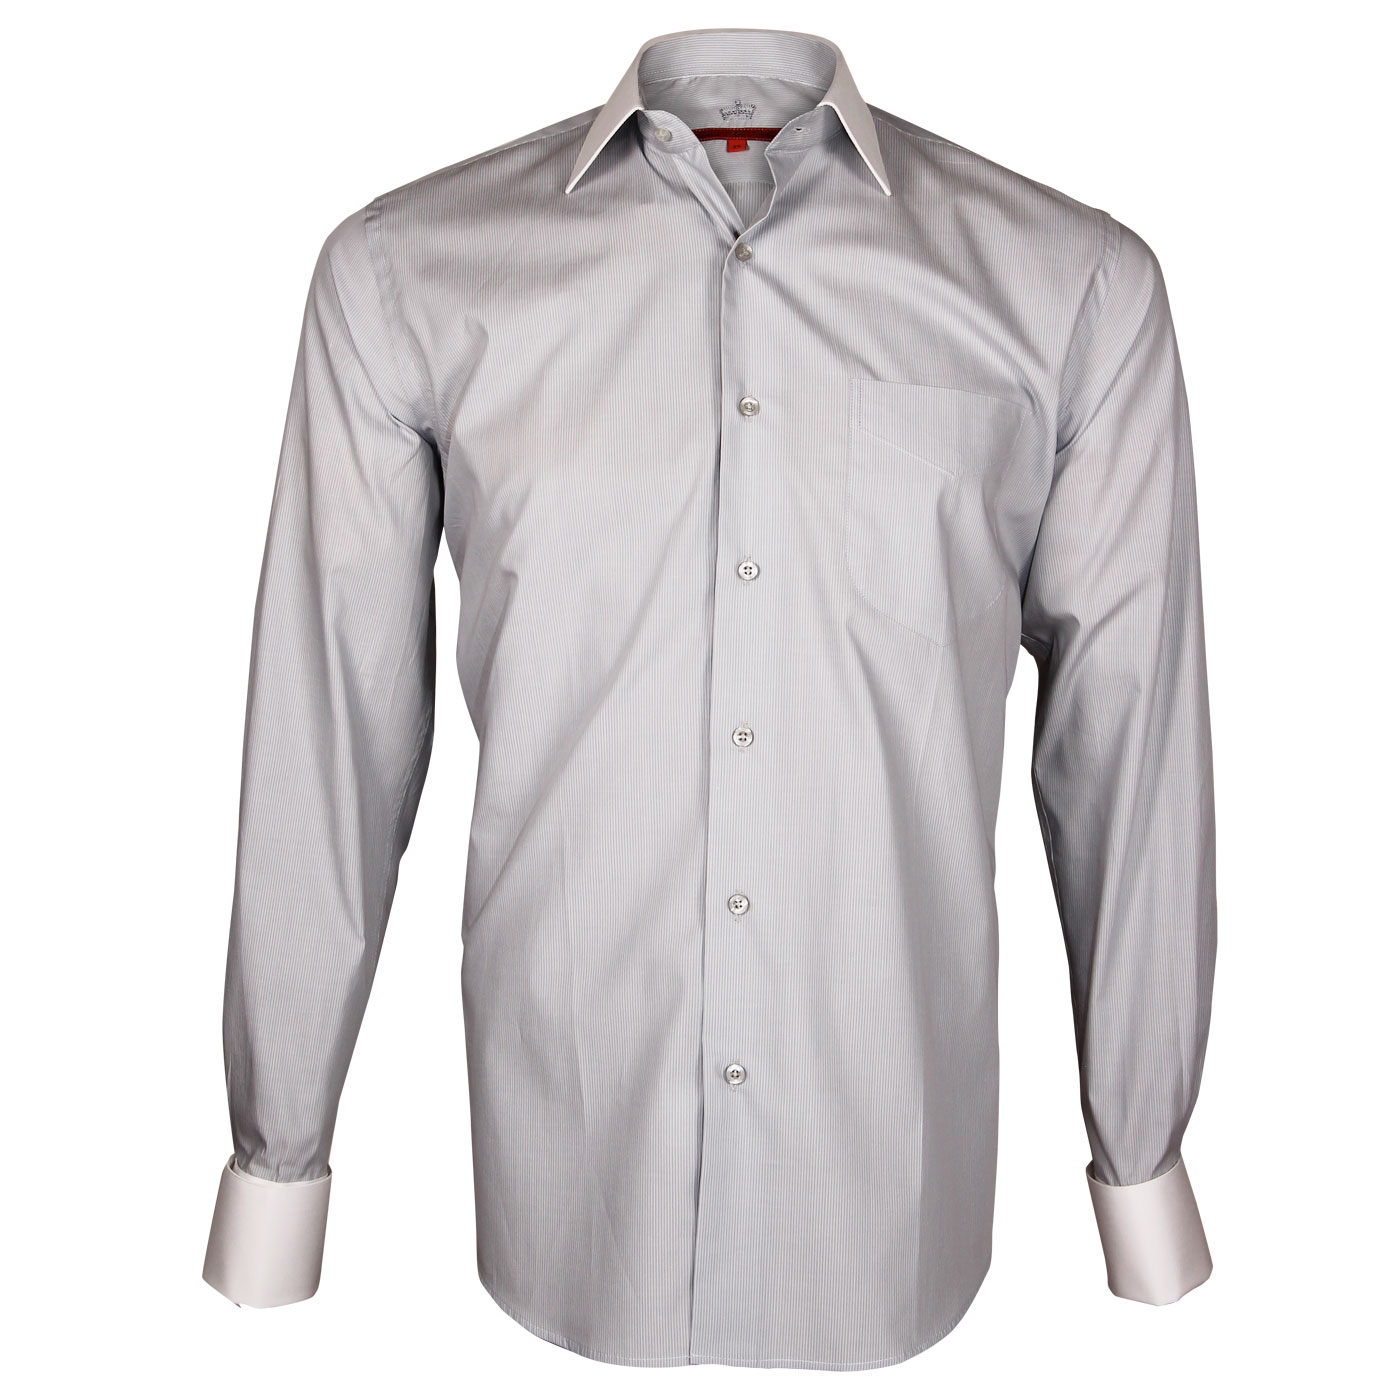 French Cuffs Lurury  Collection Shirts for Men